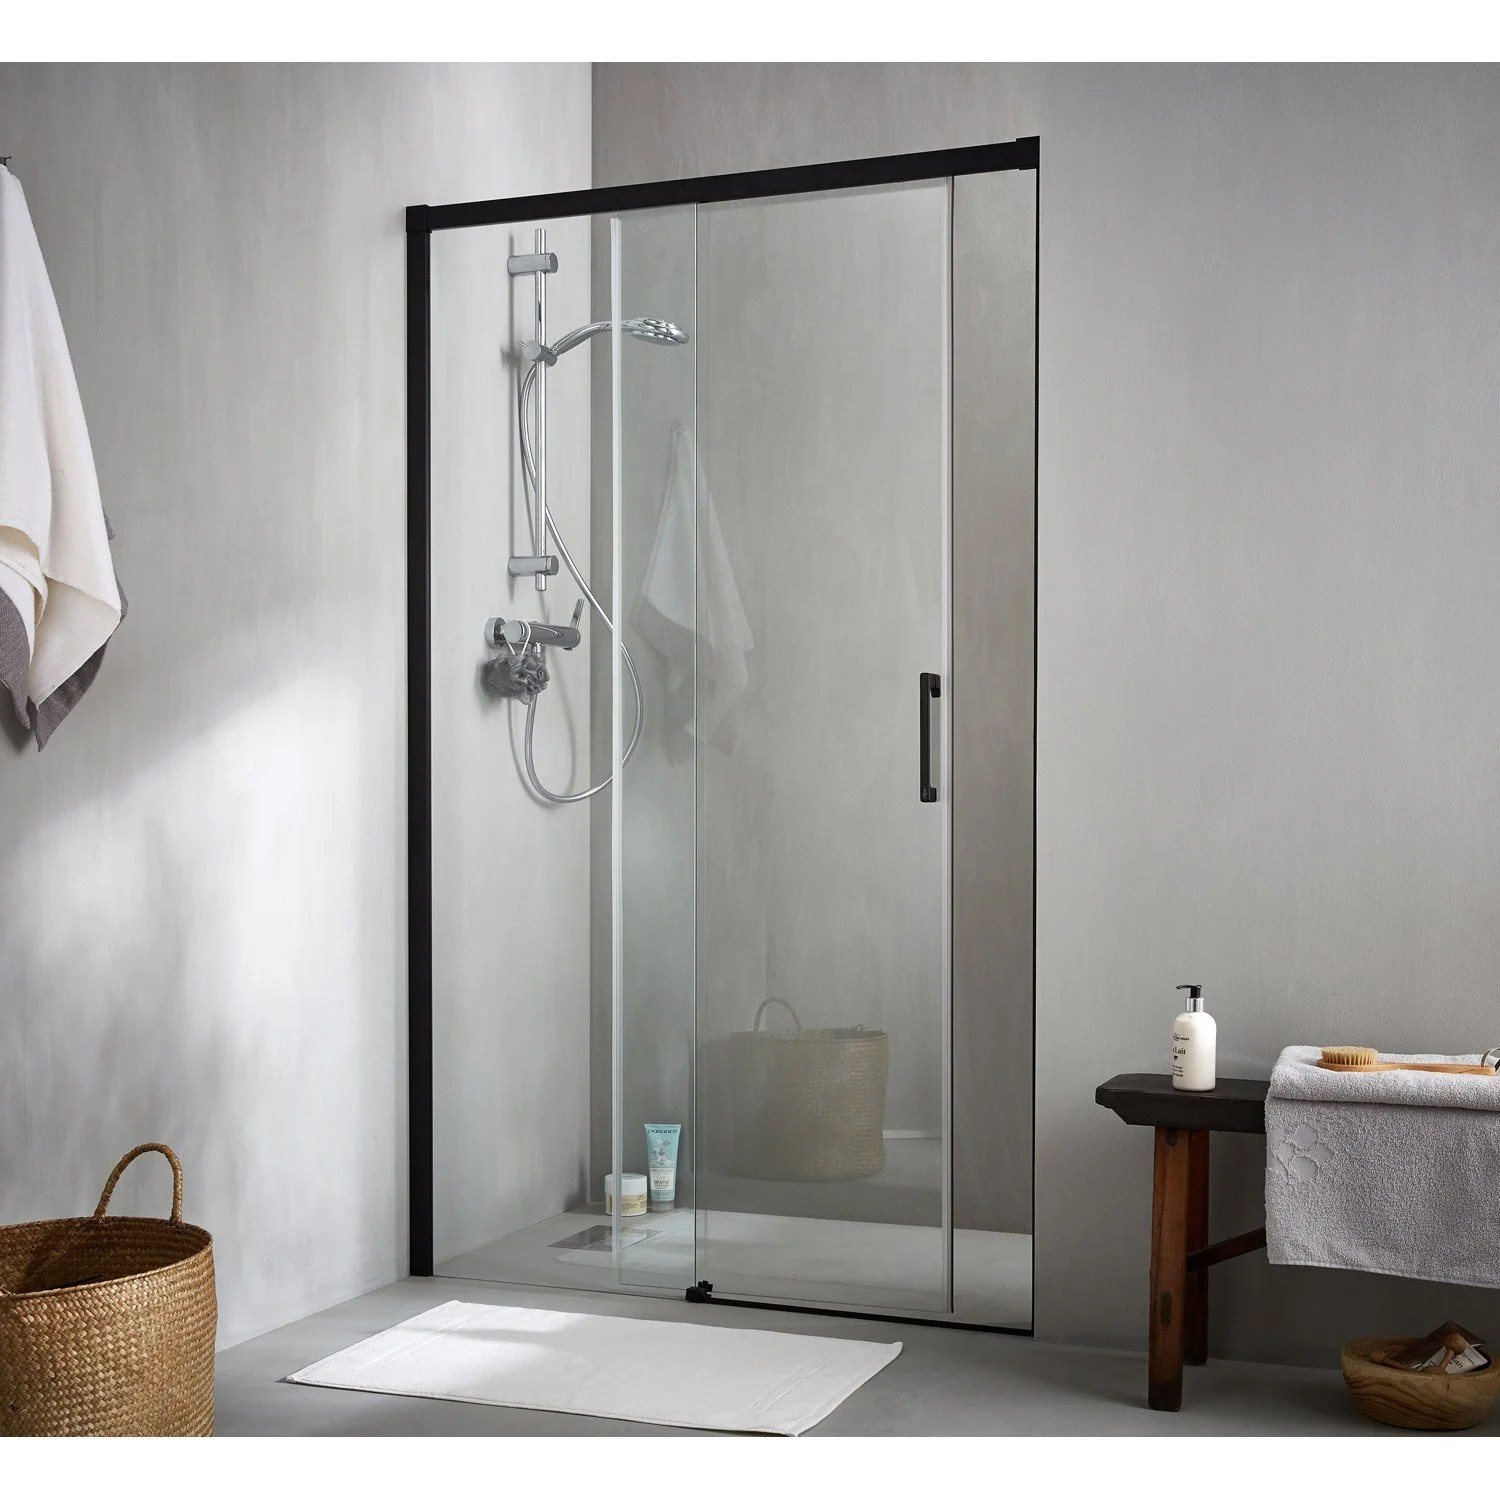 Porte Coulissante Magasin Porte De Douche Coulissante 120 Cm Transparent Remix